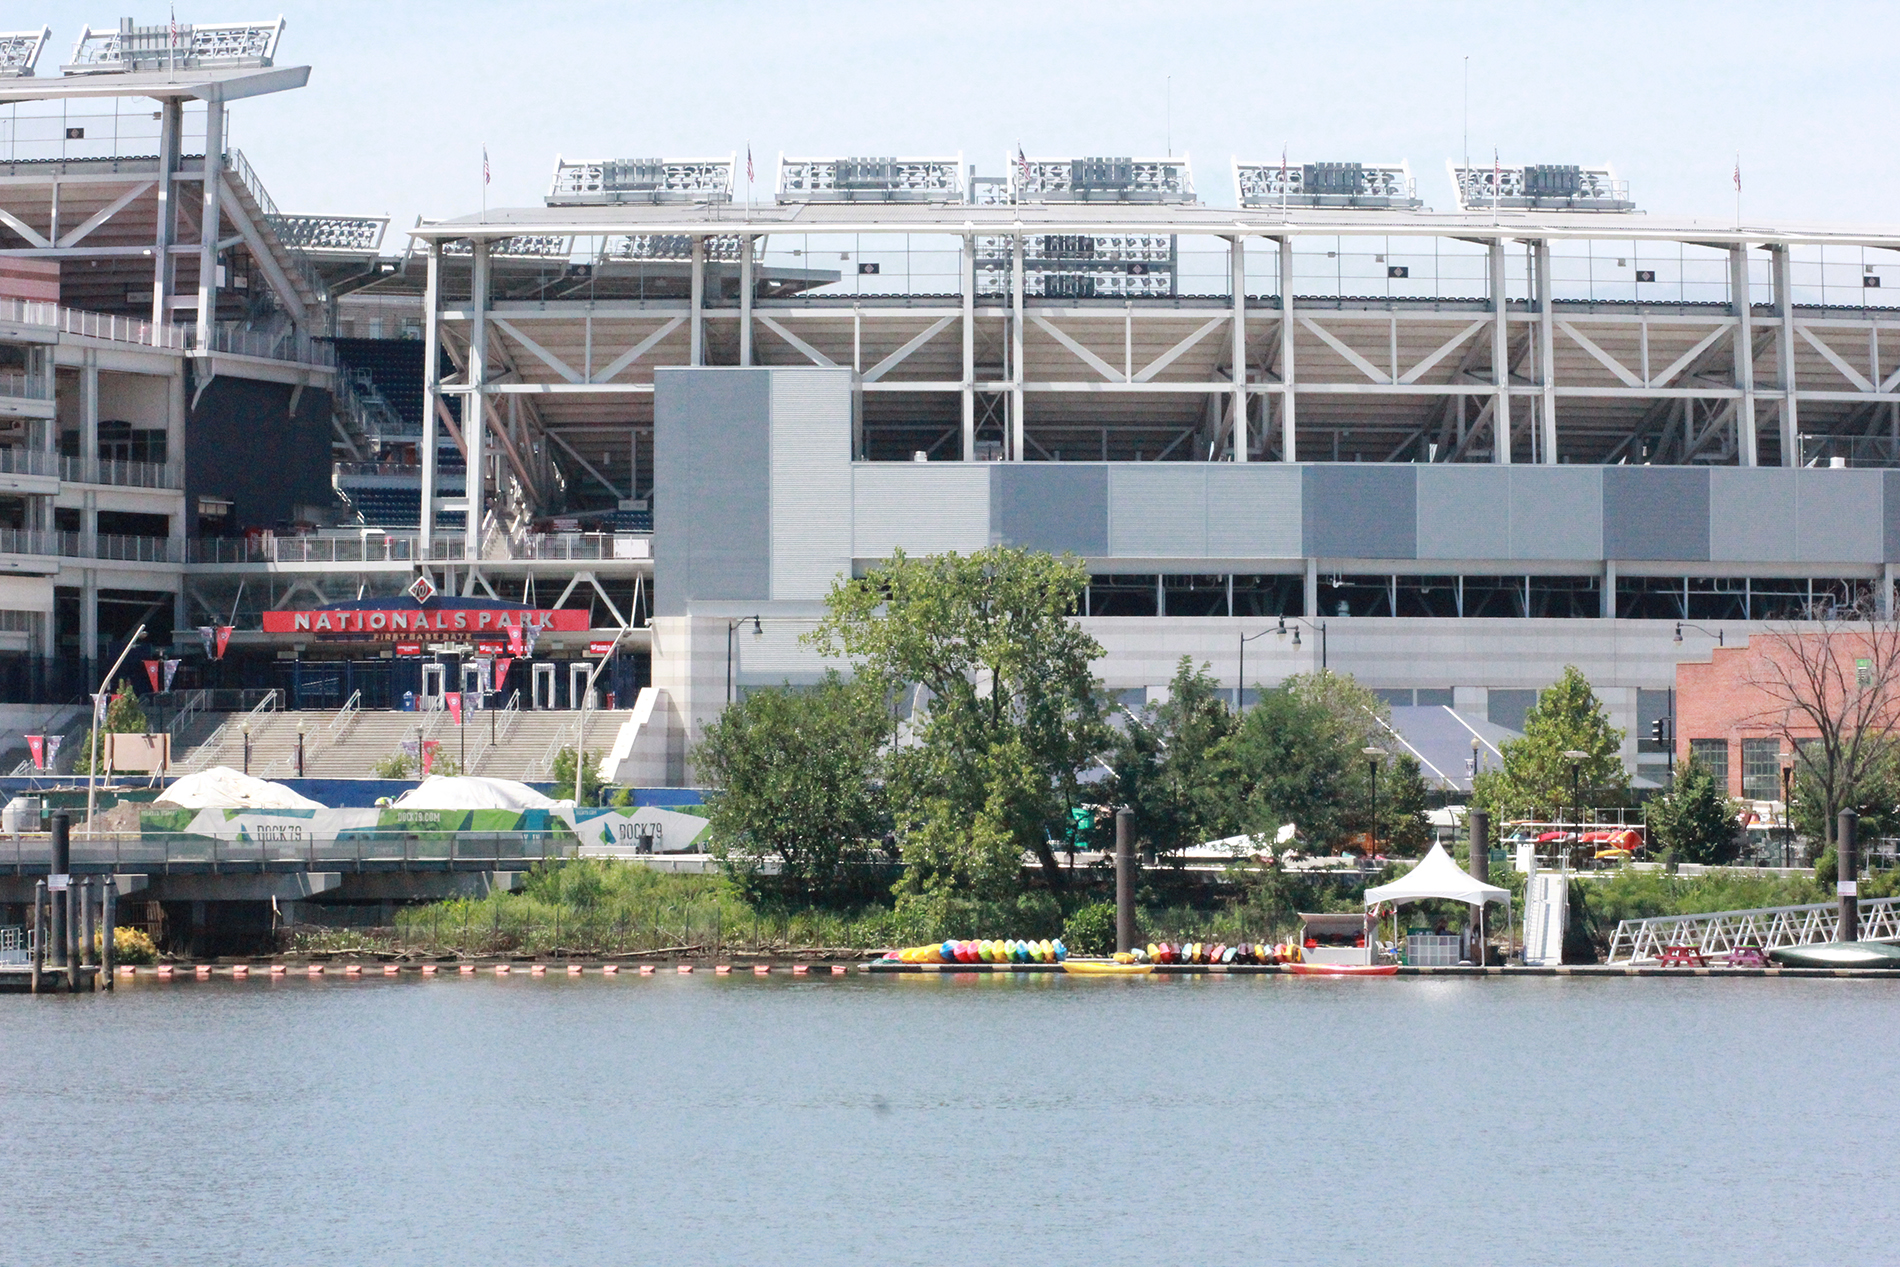 Waterfront access adjacent to the stadium.